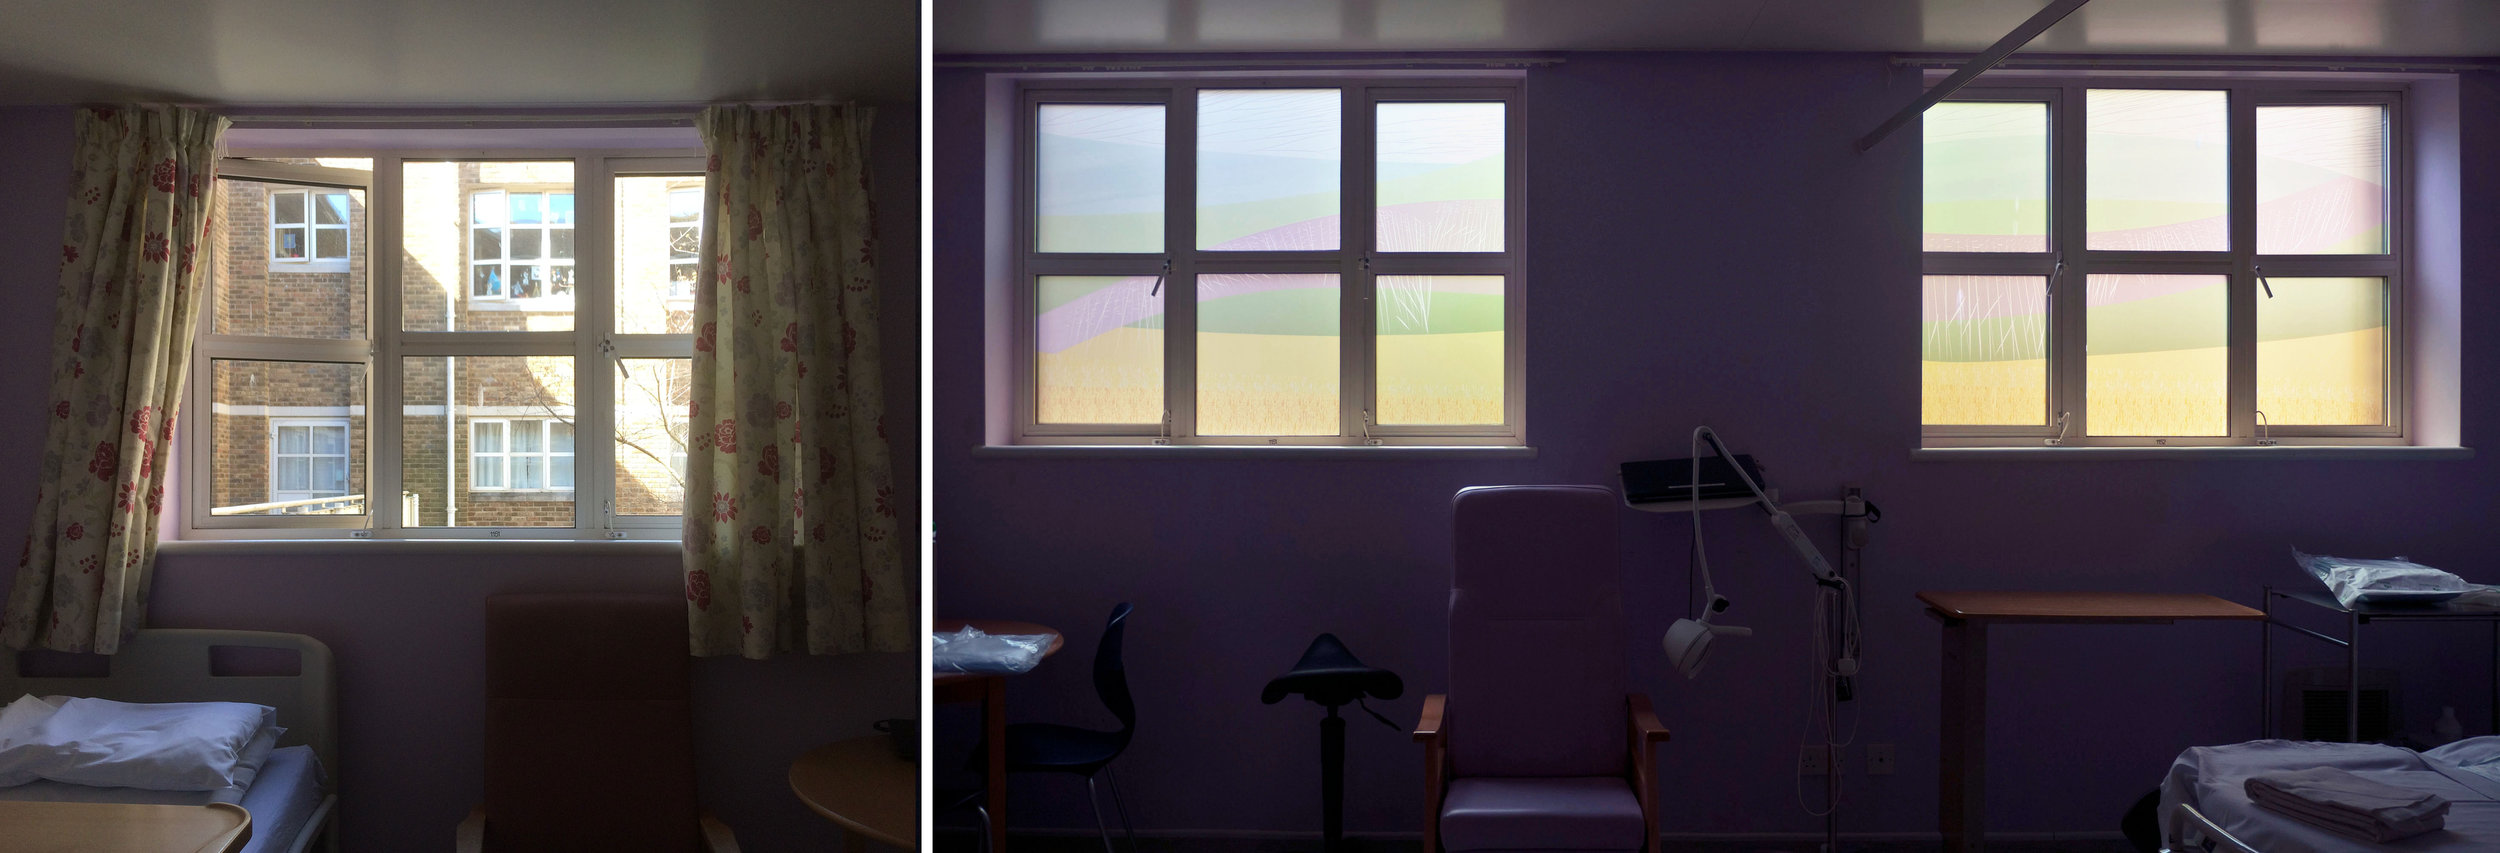 Room 12 - before and after, showing both windows against a pink wall.